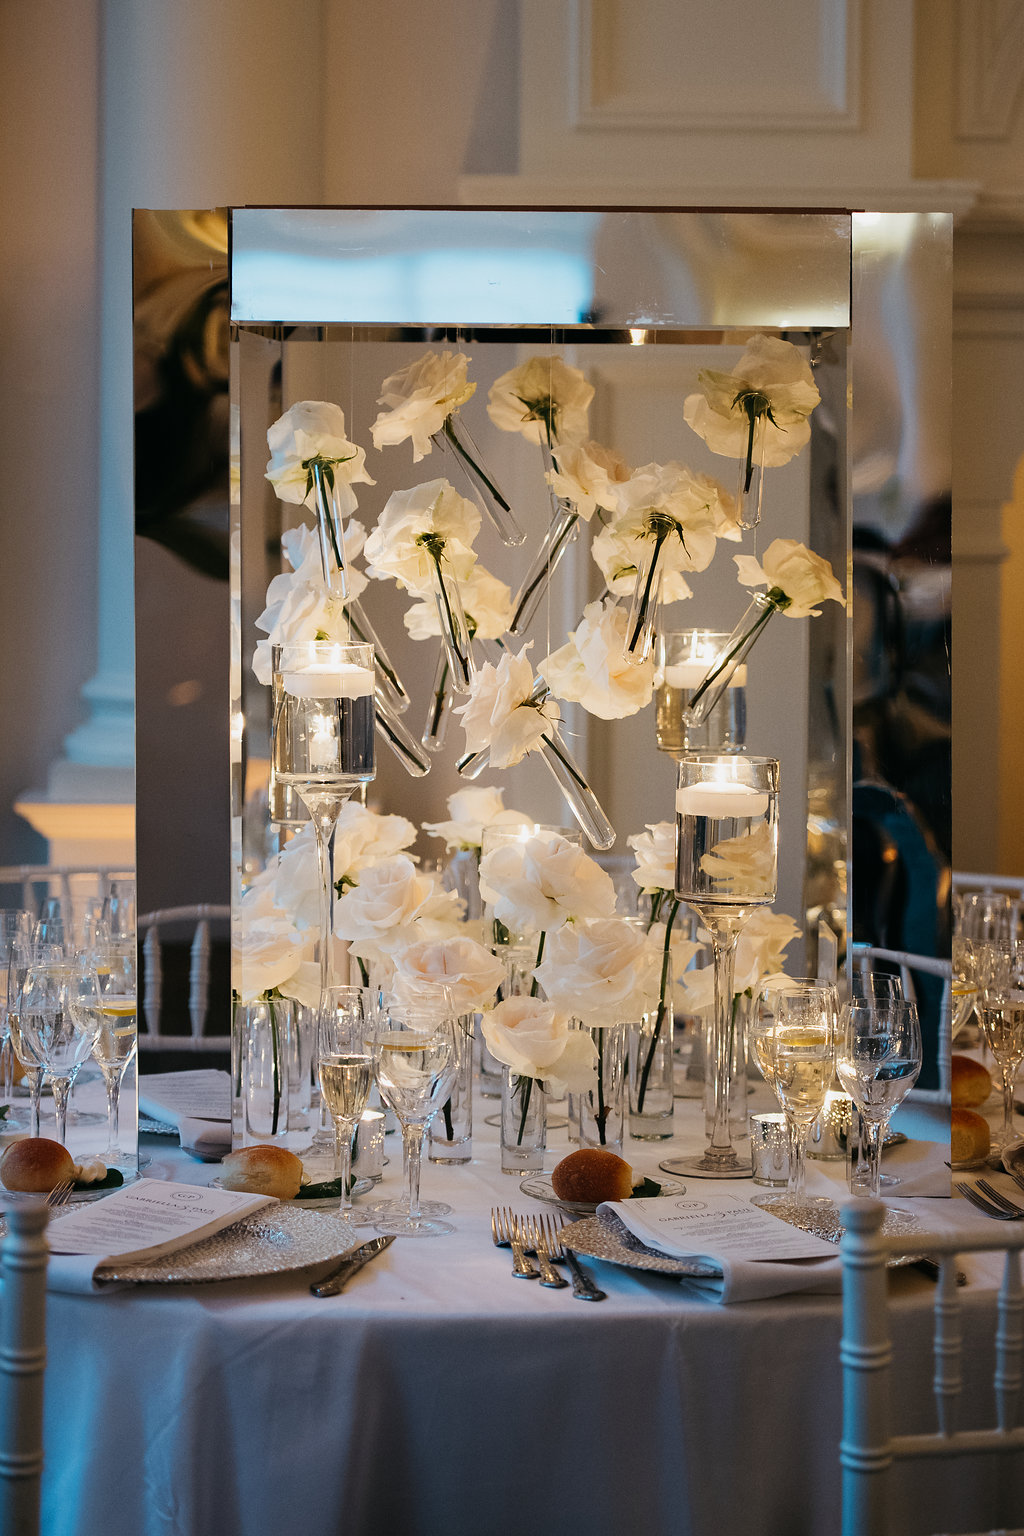 suspended white flowers in centerpiece at wedding